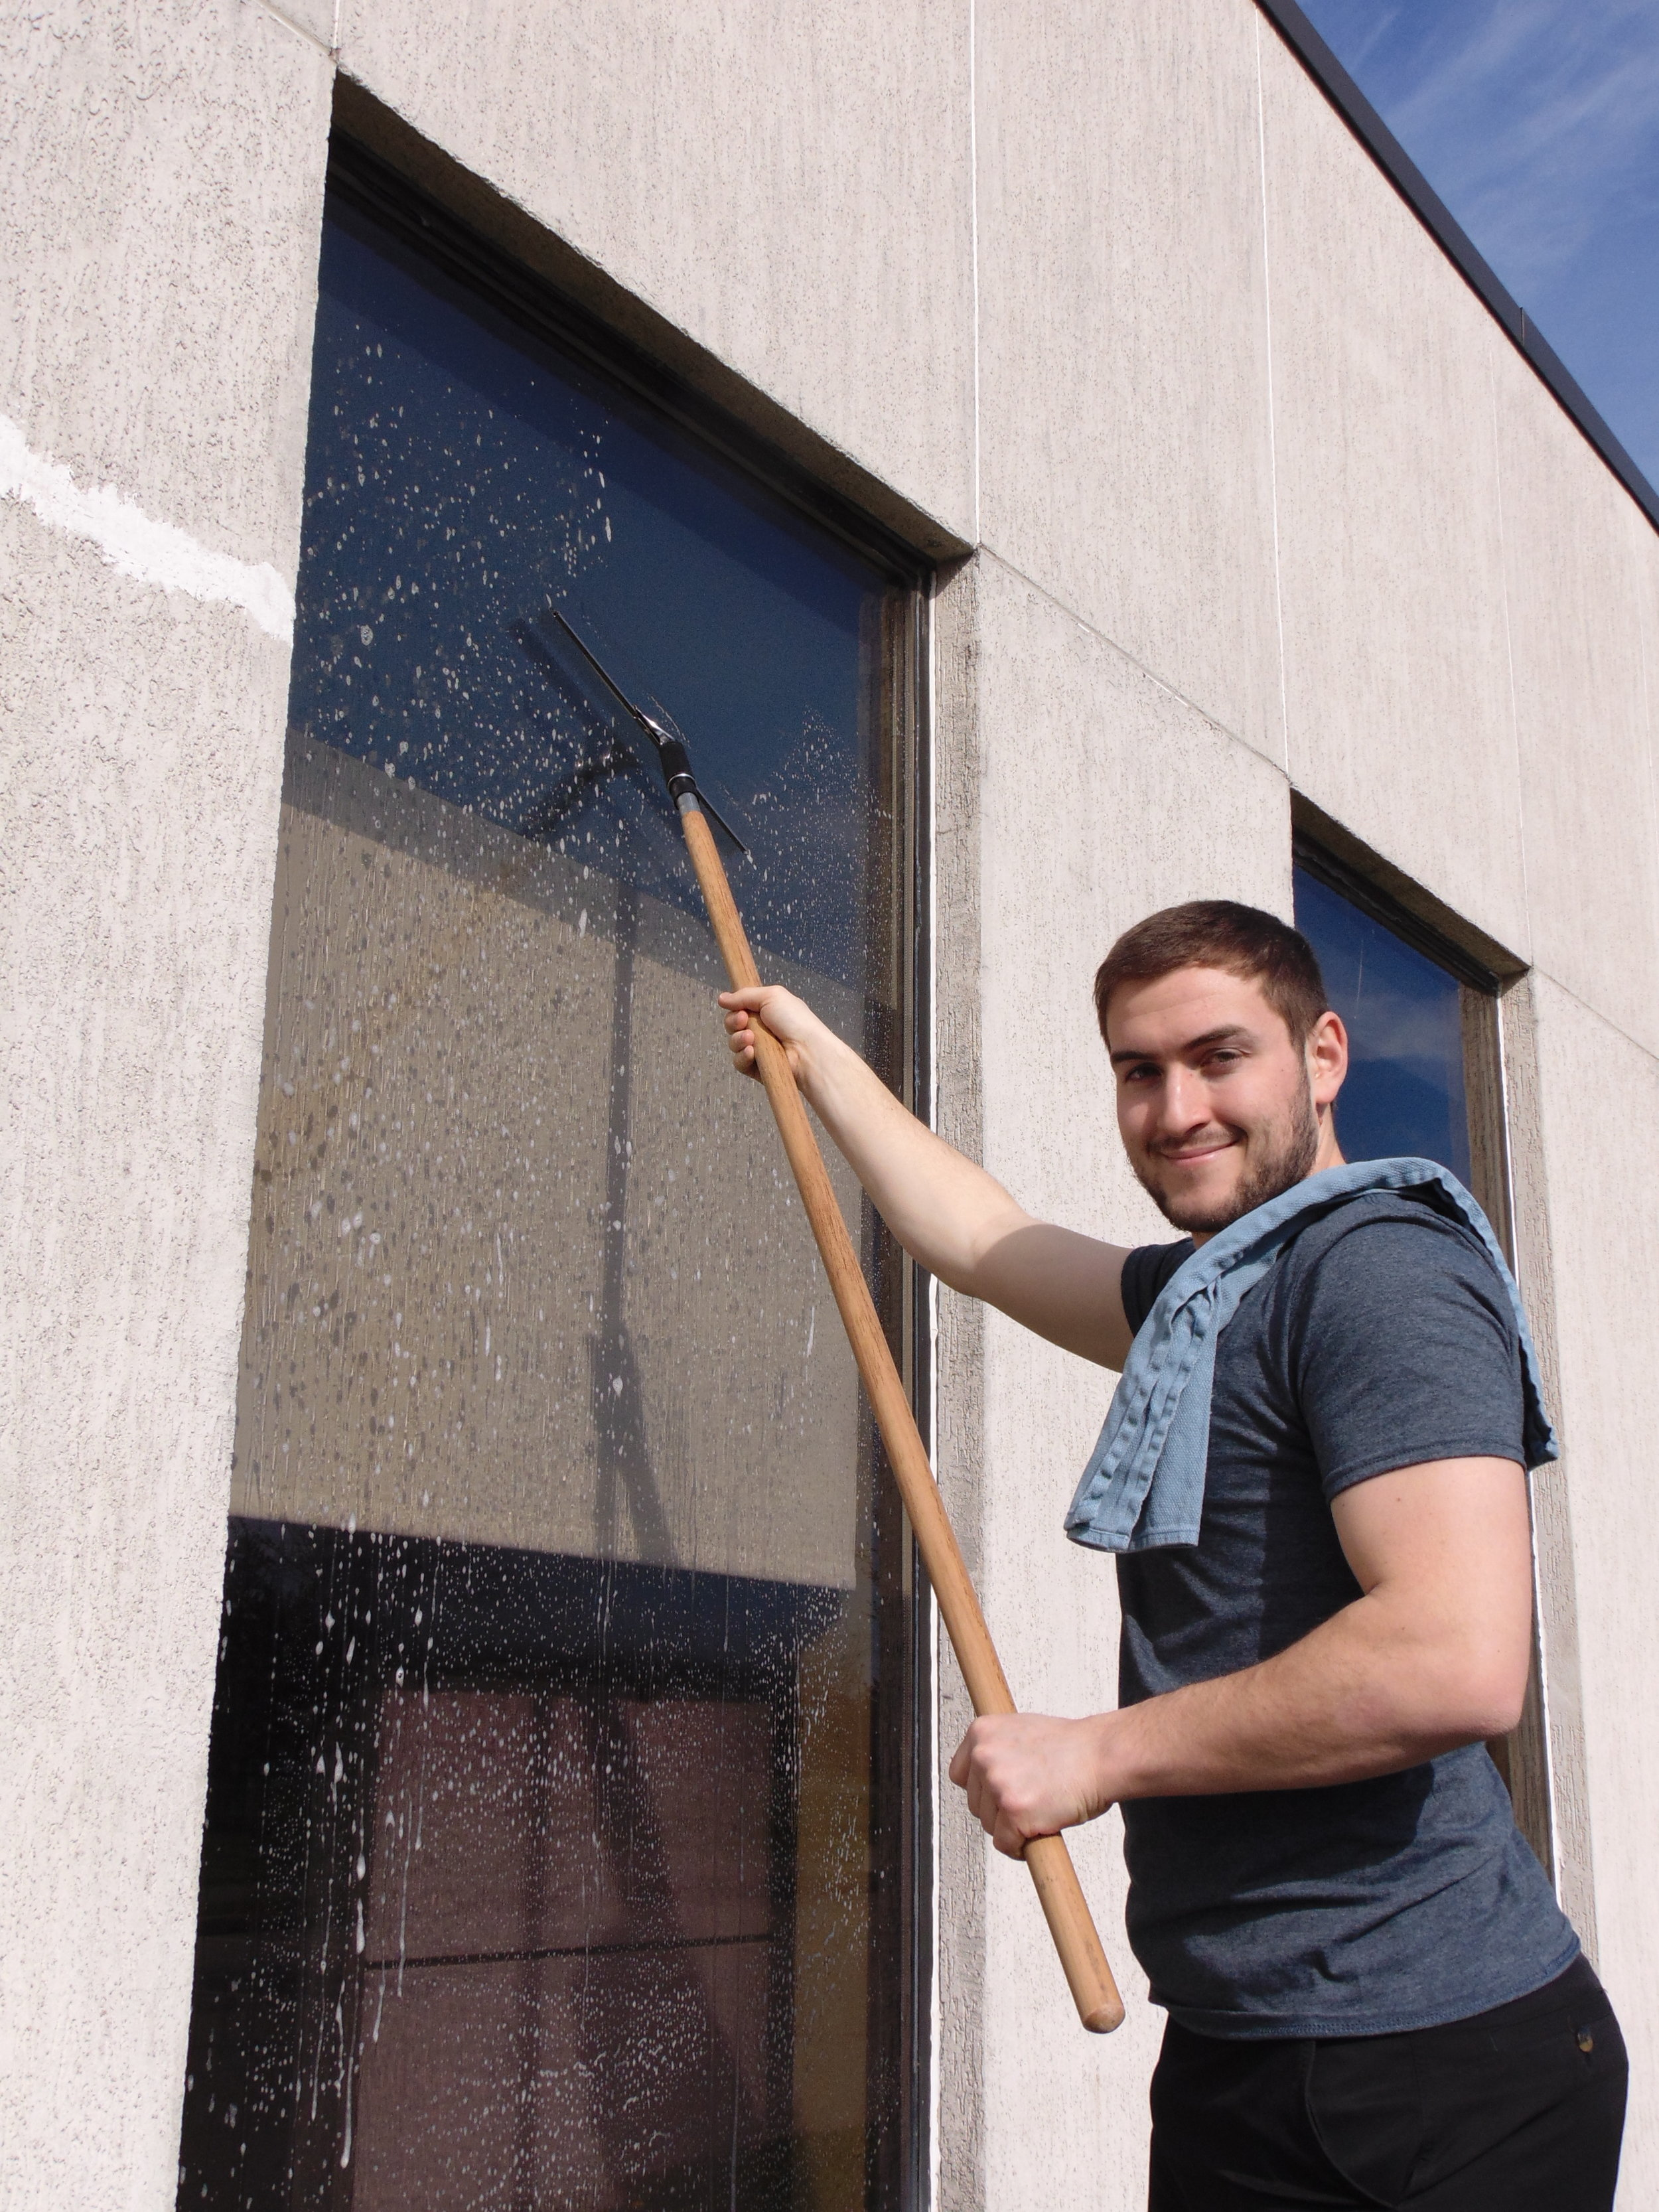 we provide exterior and interior window cleaning